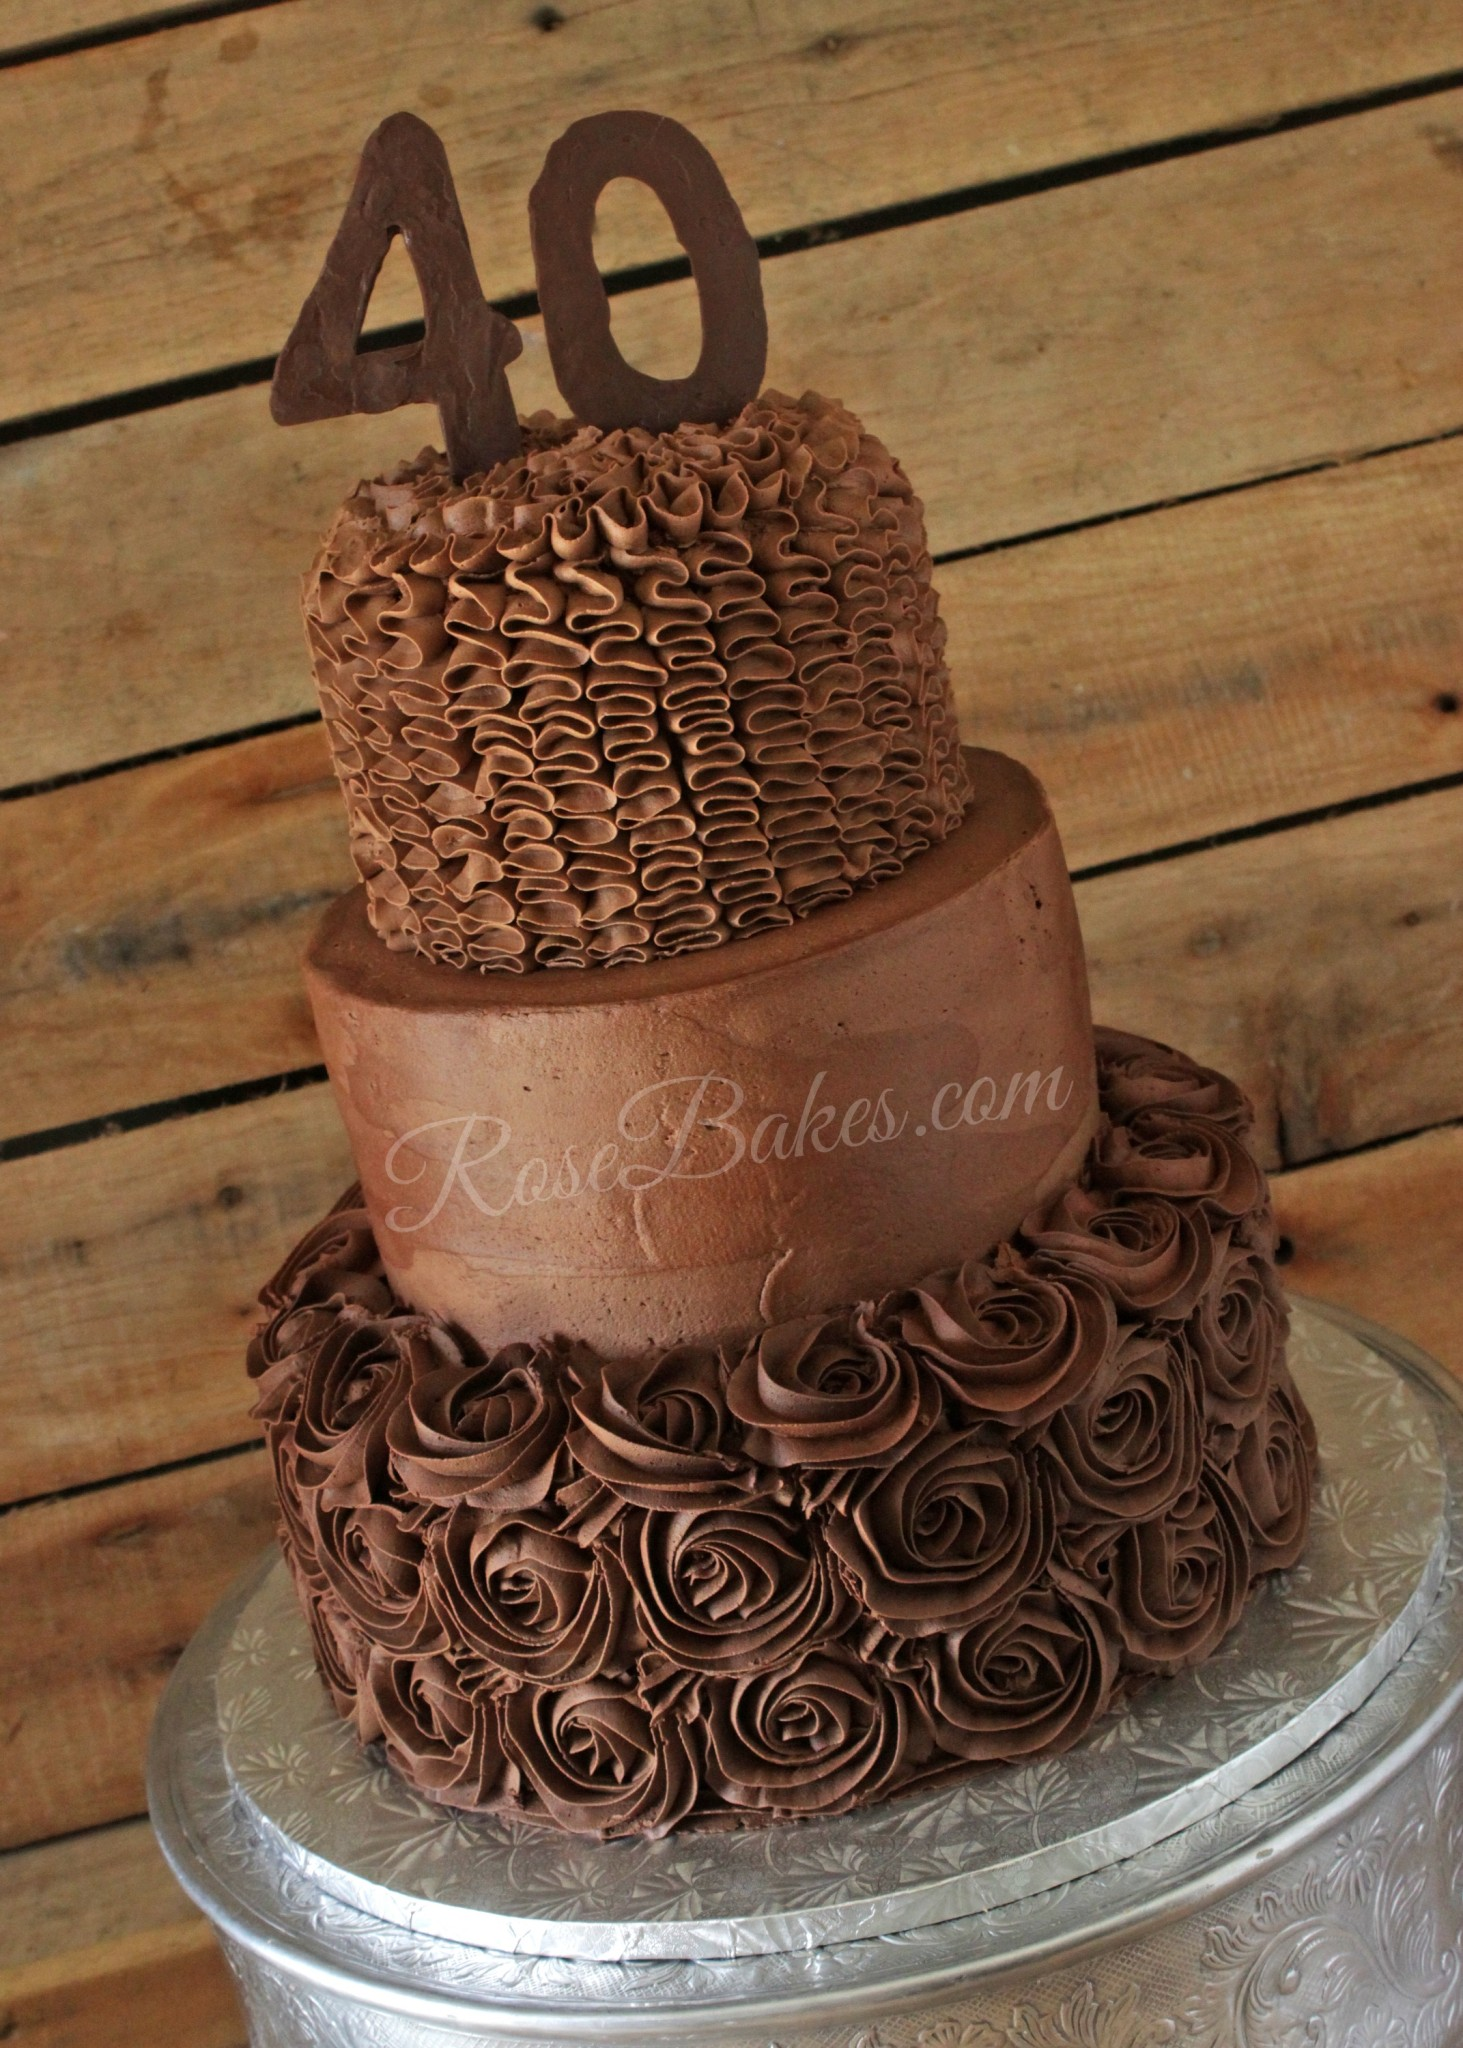 All Chocolate 40th Birthday Cake - Rose Bakes